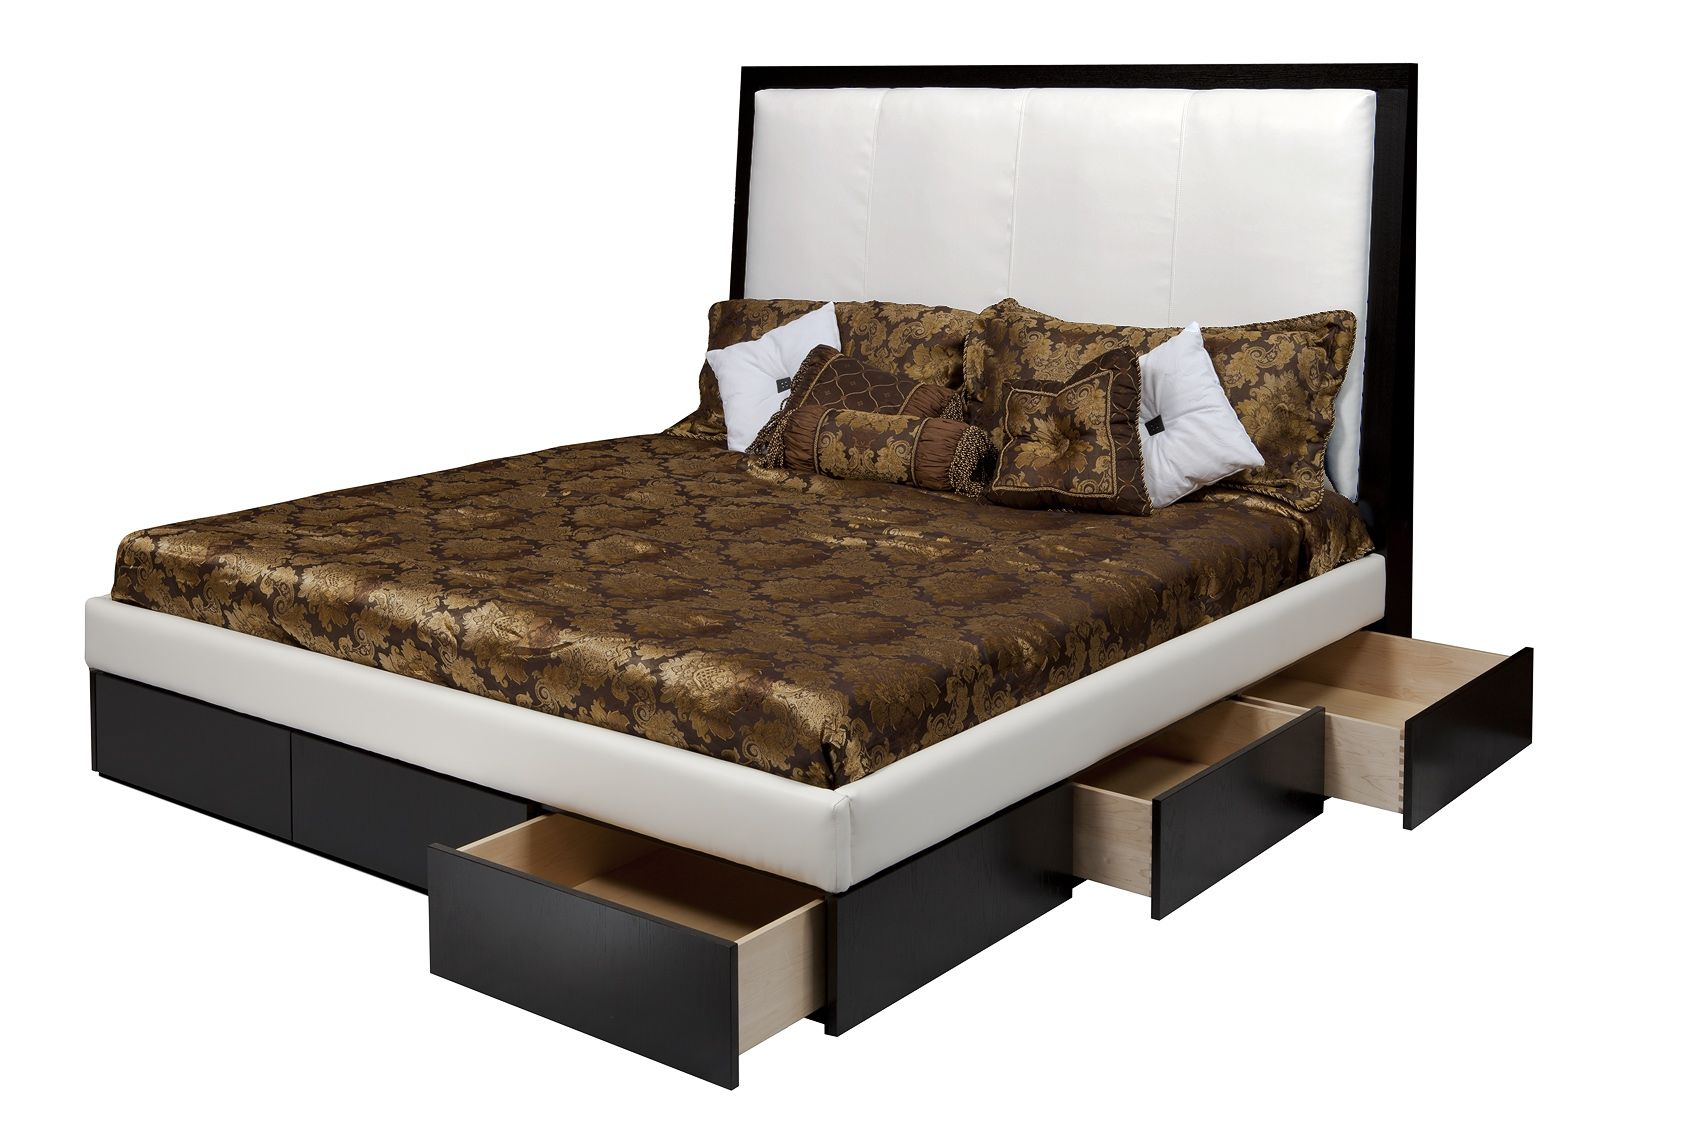 Custom The Stacie Mod Leather Bed By Corl Design Ltd Custommade Com